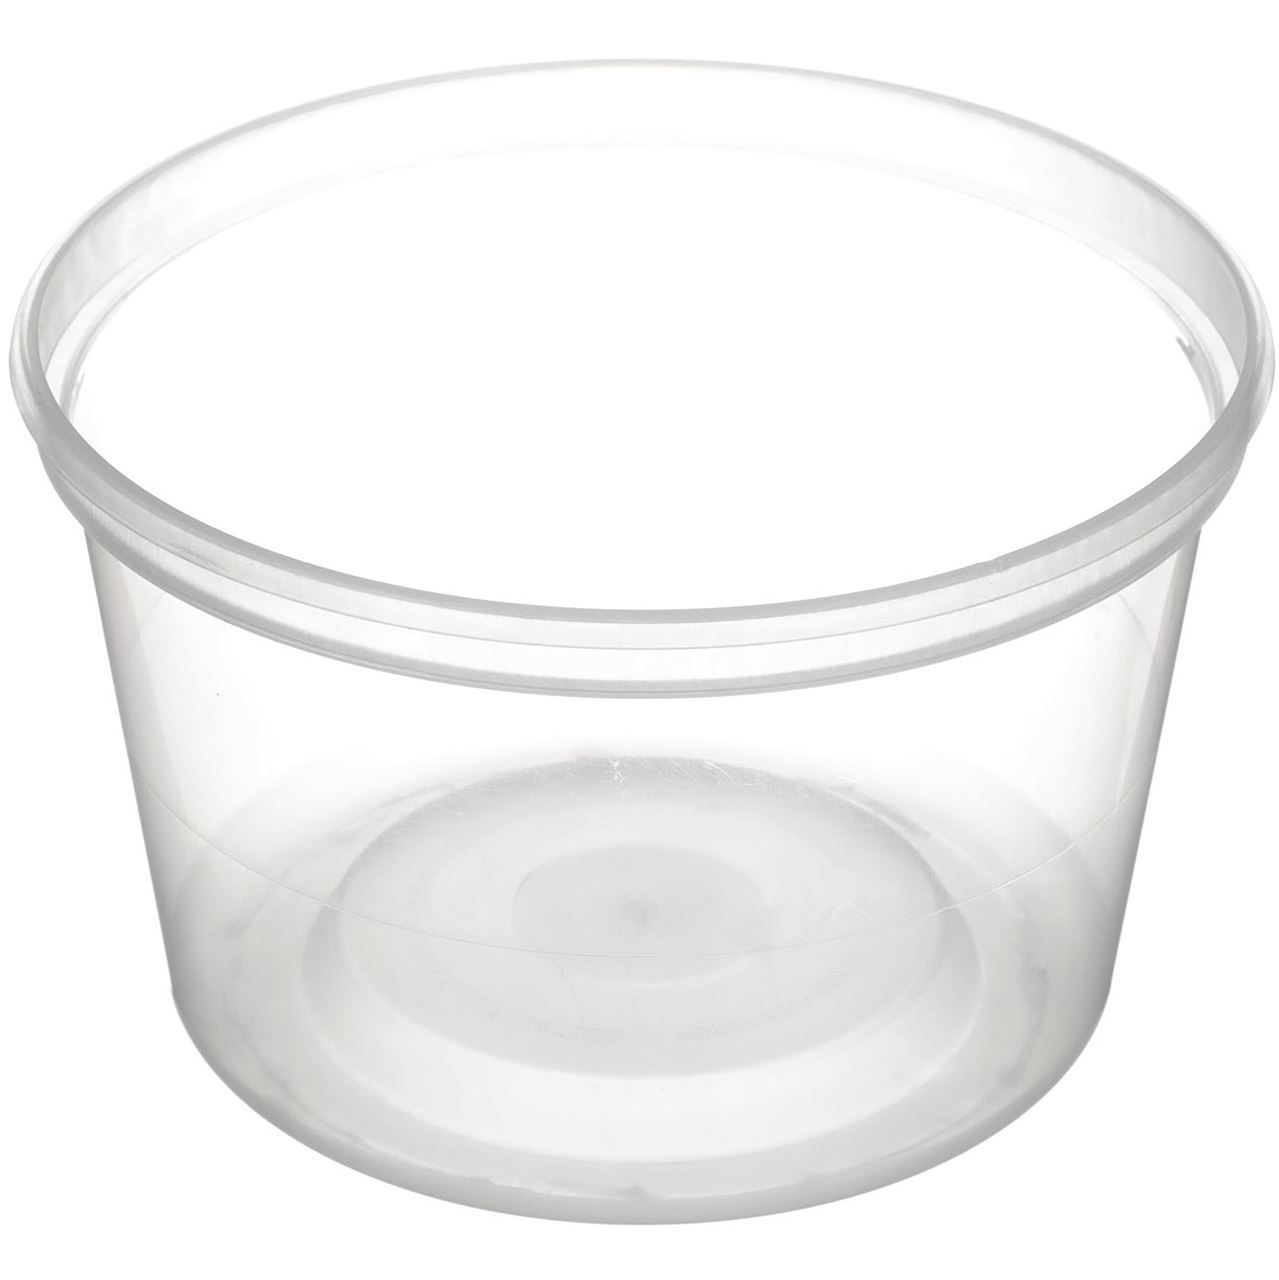 360 Product Spin Icon 16 Oz Clarified P Plastic Tub Round 410 Diameter Angled View